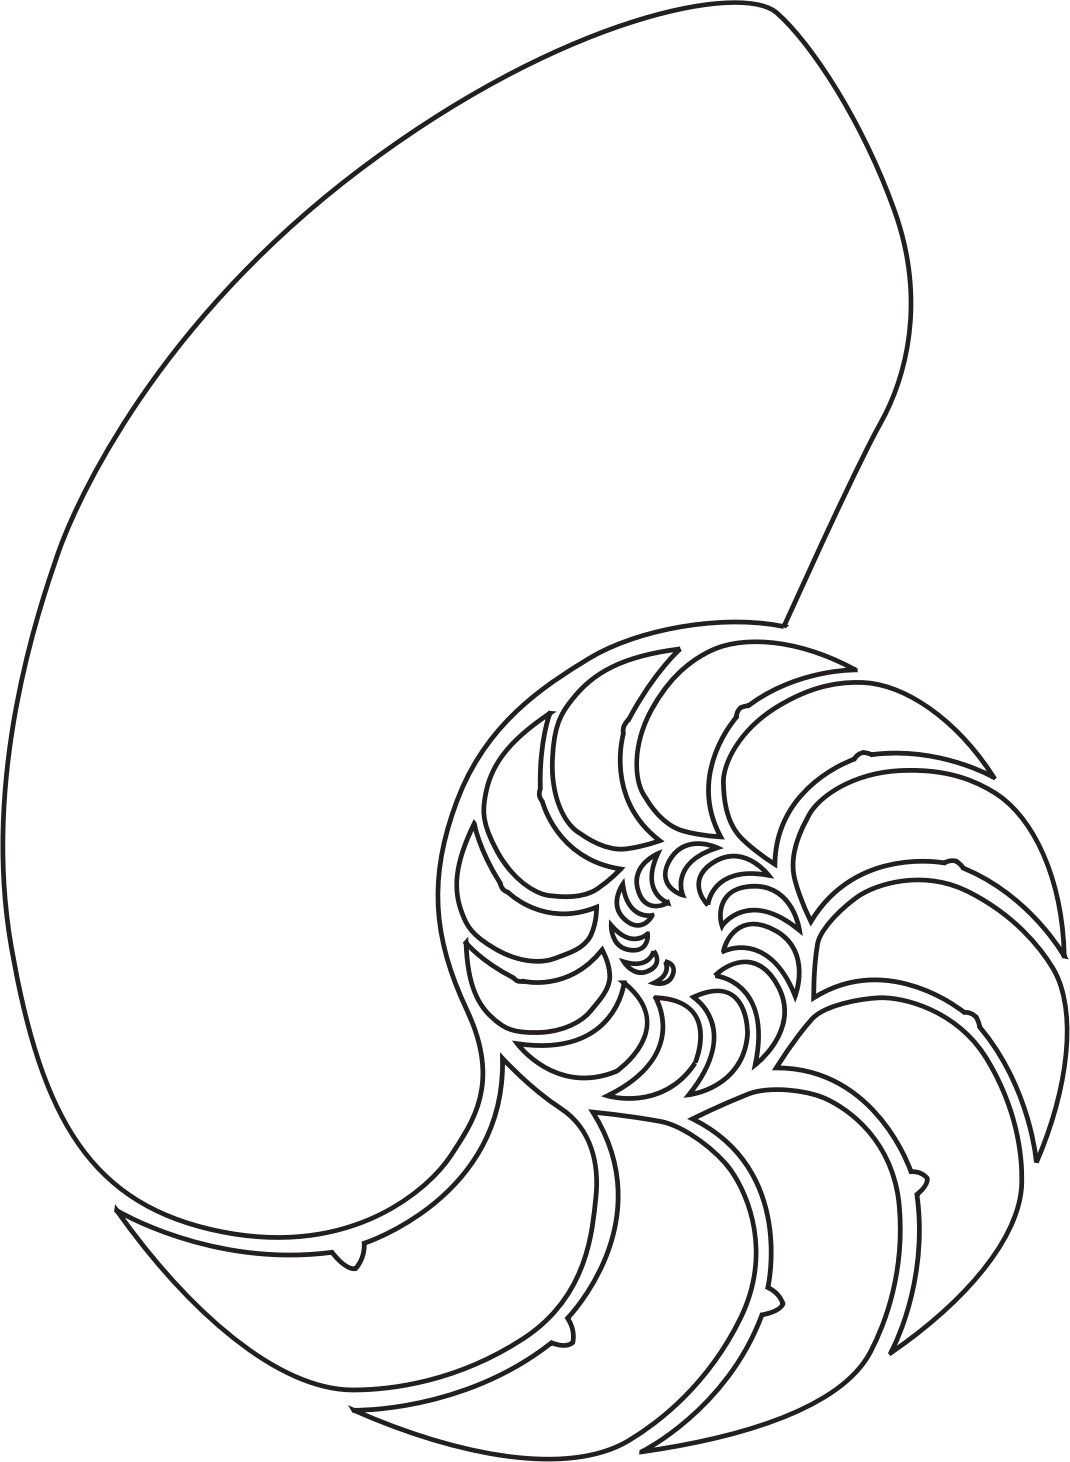 Shotgun clipart outline. Shell drawing at getdrawings